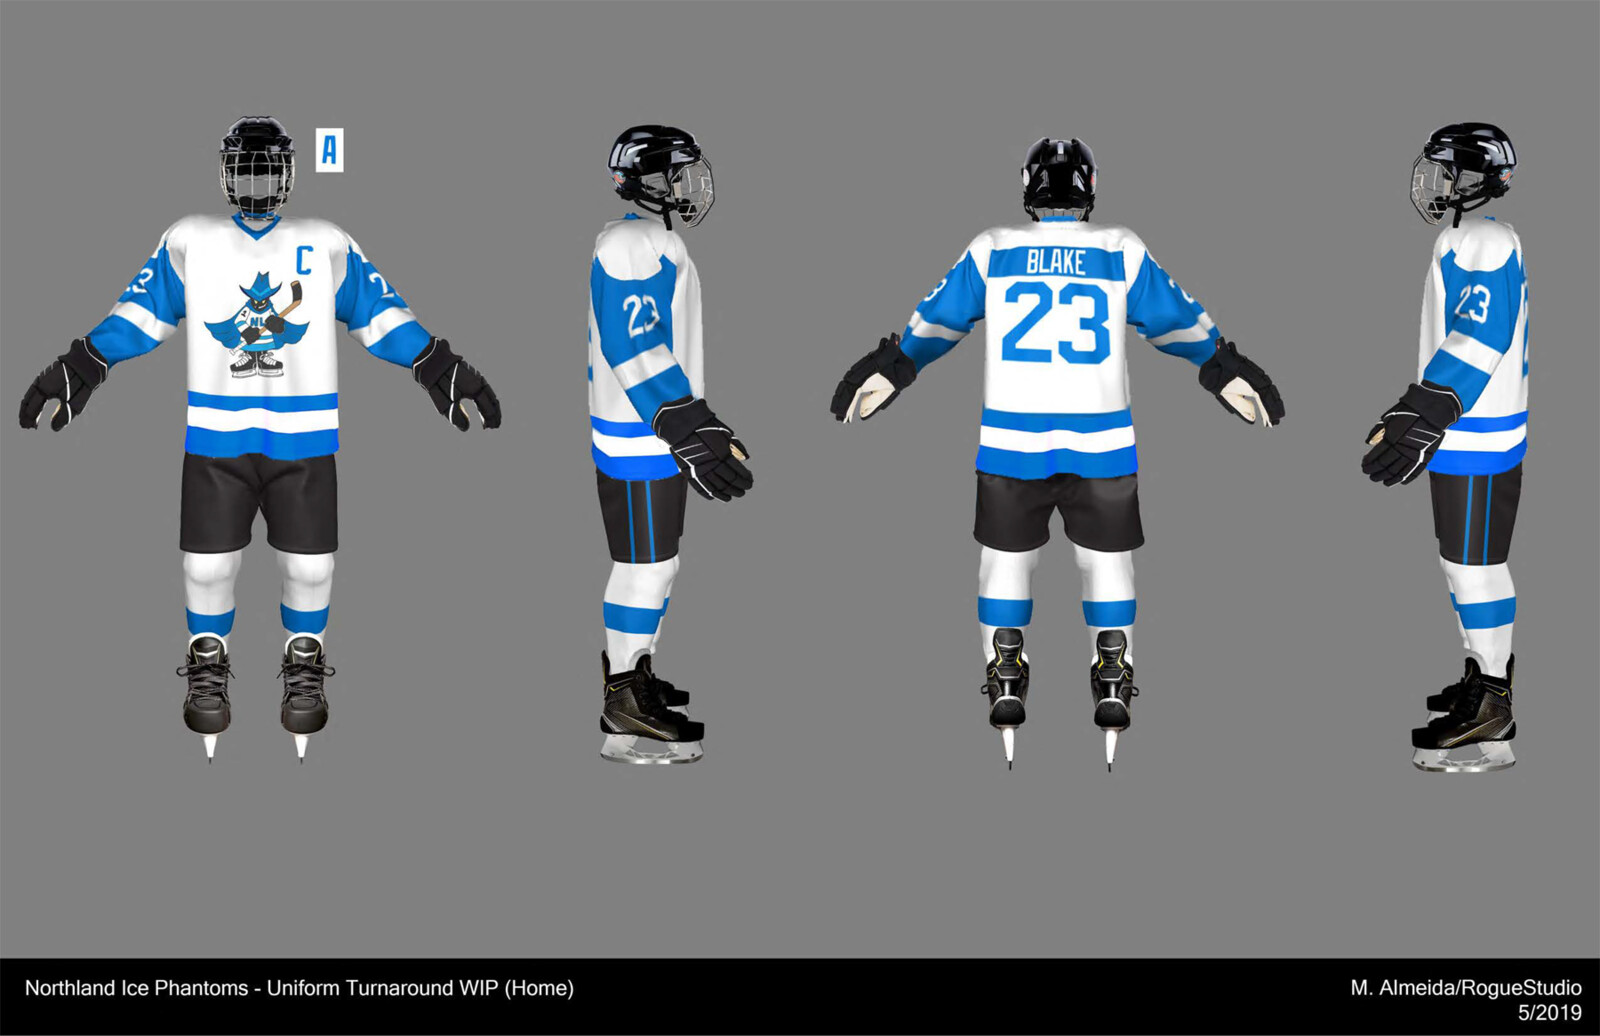 Home Uniform turnaround (WIP), Photoshop composite